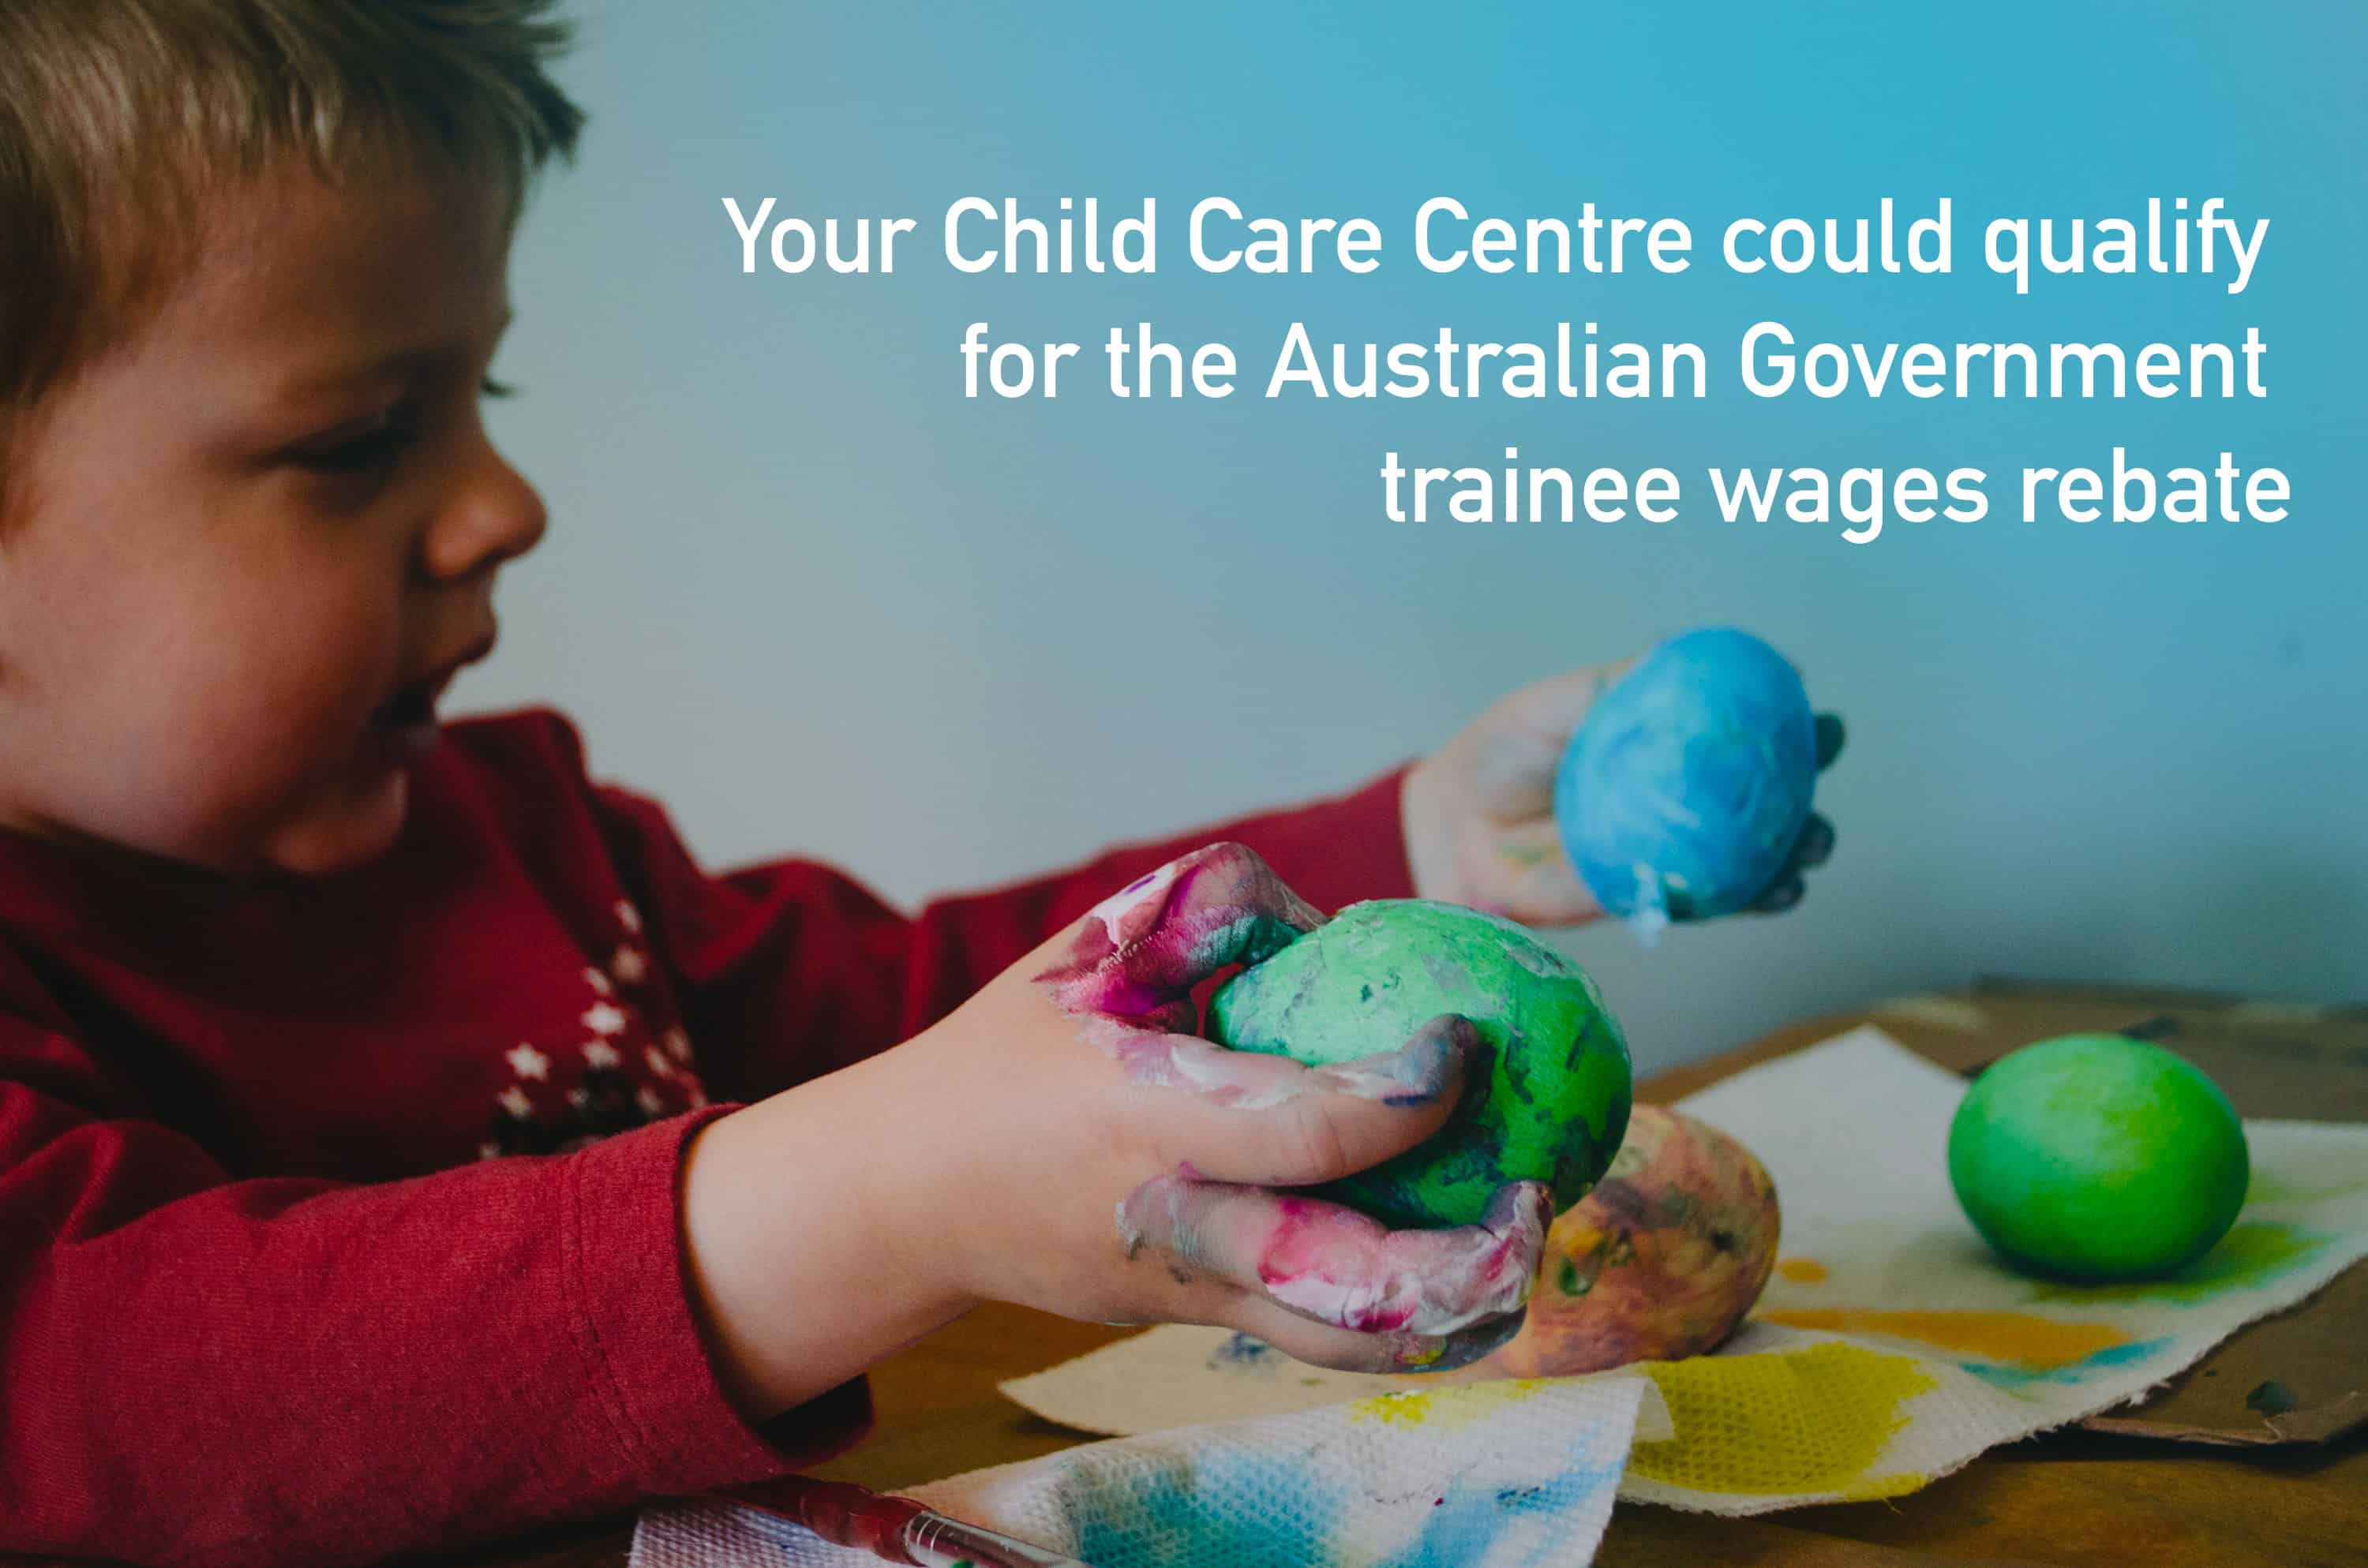 Your centre can receive a 50% rebate on trainee wages thanks to the Australian Government's new incentive